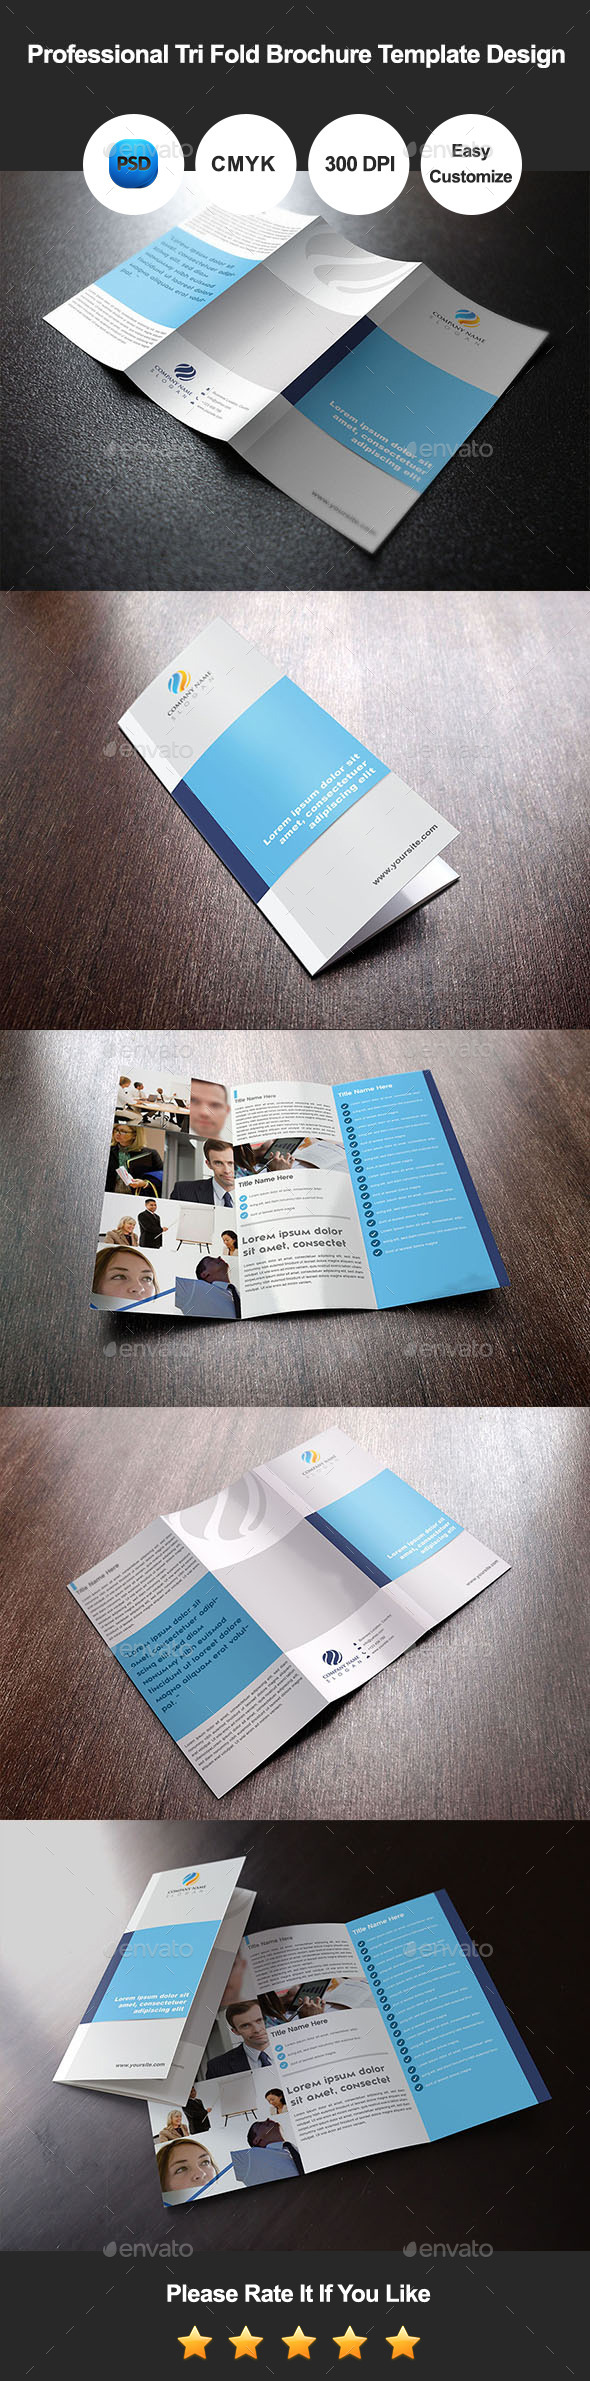 GraphicRiver Professional Tri Fold Brochure Template Design 11596031